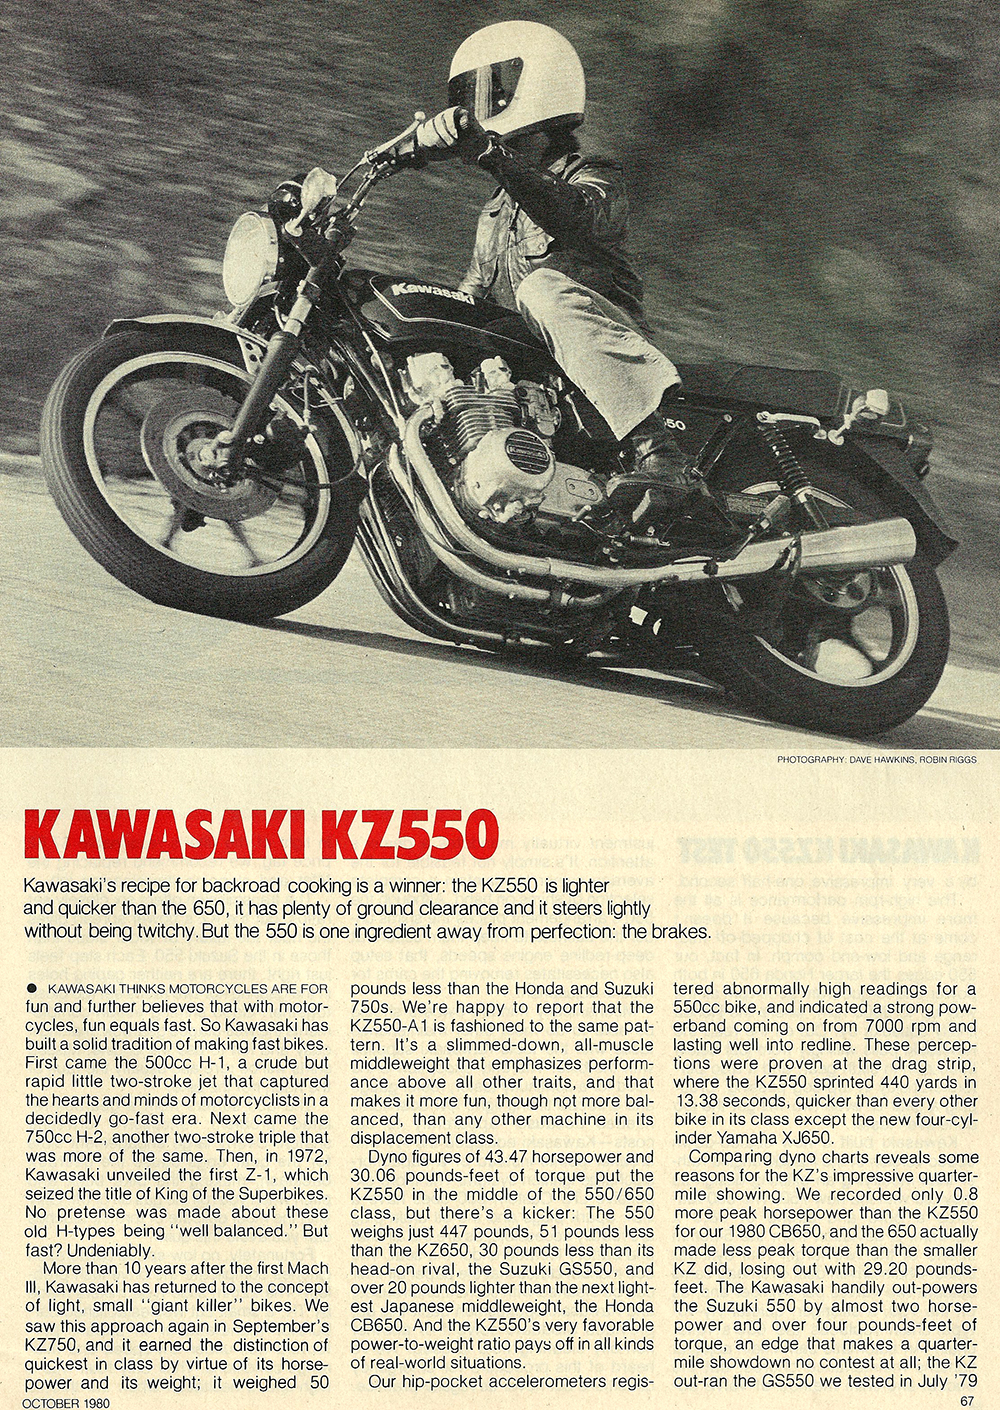 1980 Kawasaki KZ550 road test 01.jpg